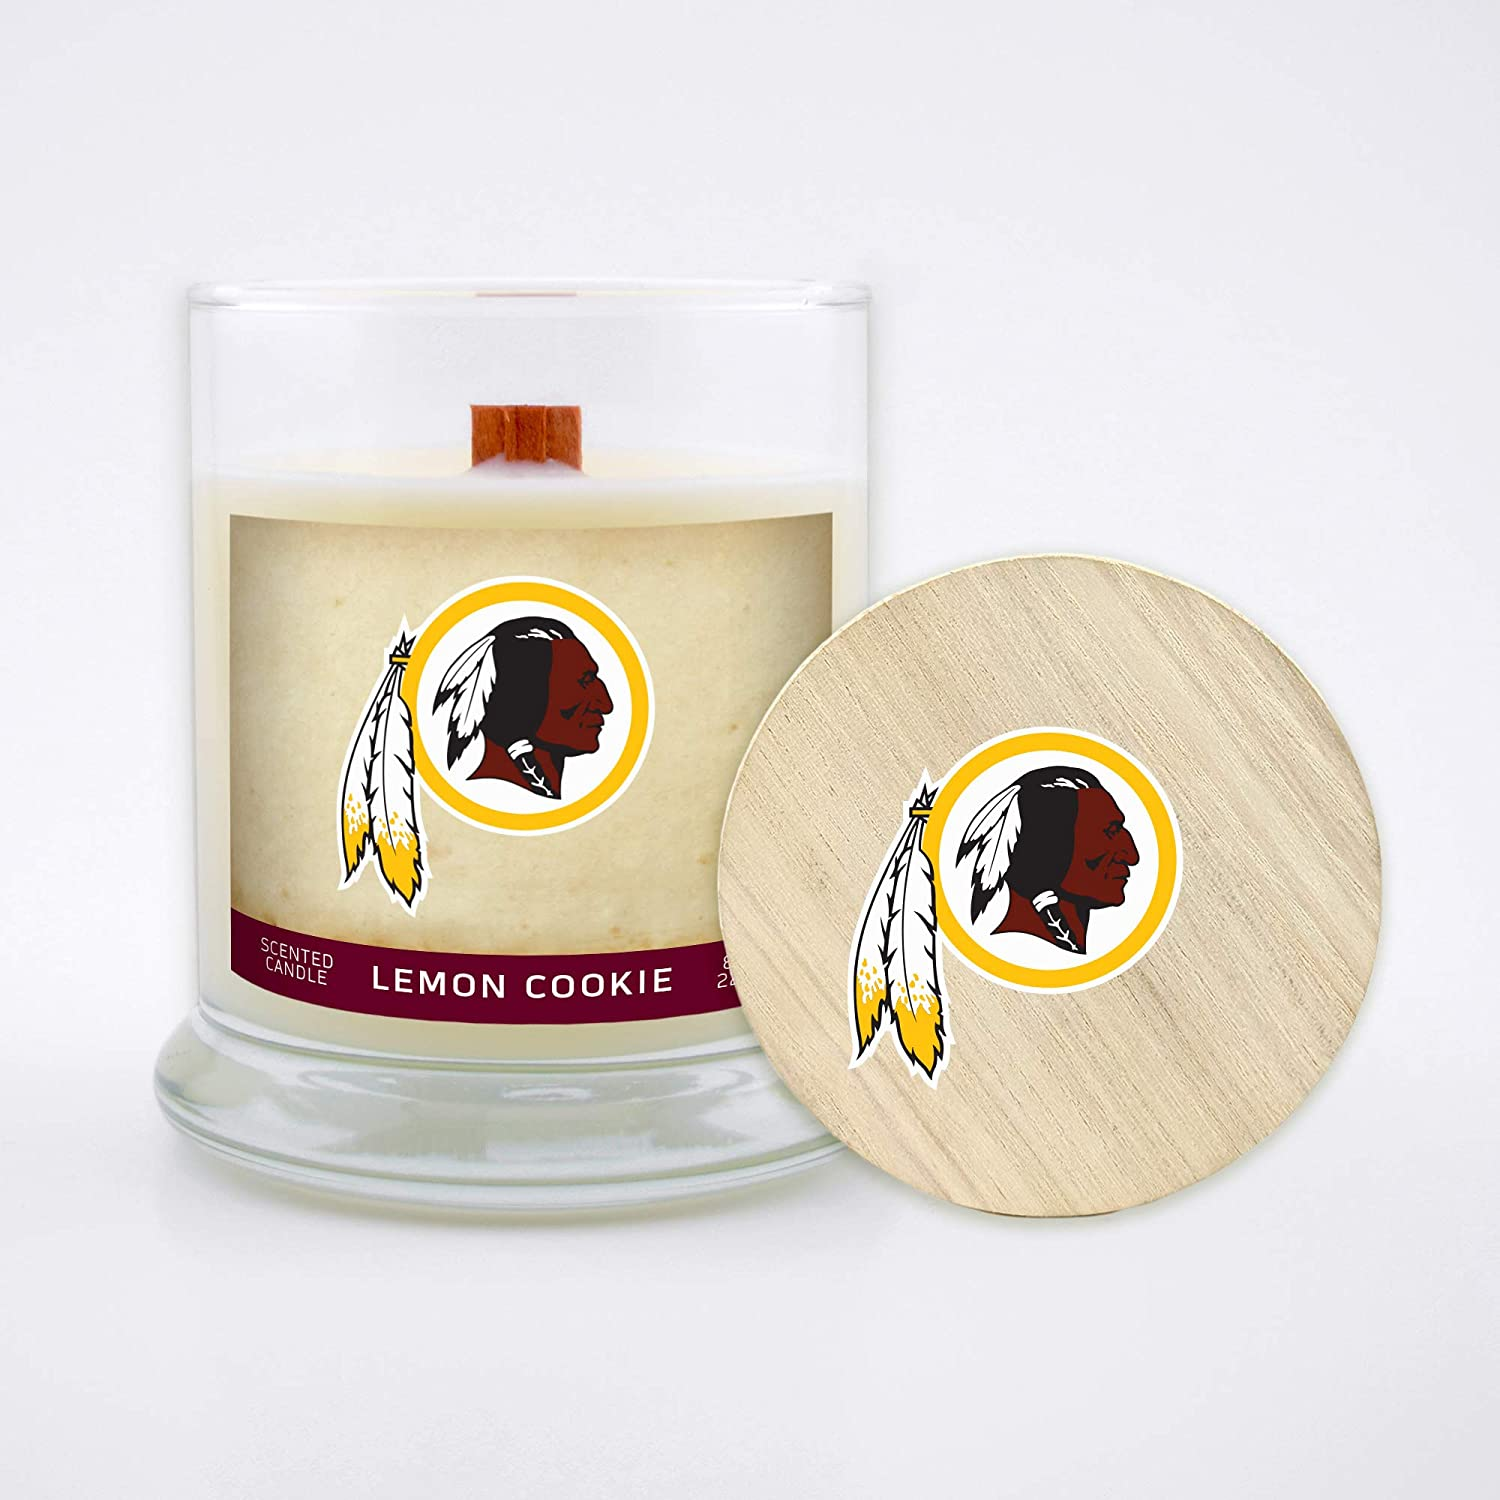 Worthy Promo NFL Washington Redskins Gifts 8oz Scented Candle Soy Wax w//Wood Wick and Lid Lemon Cookie